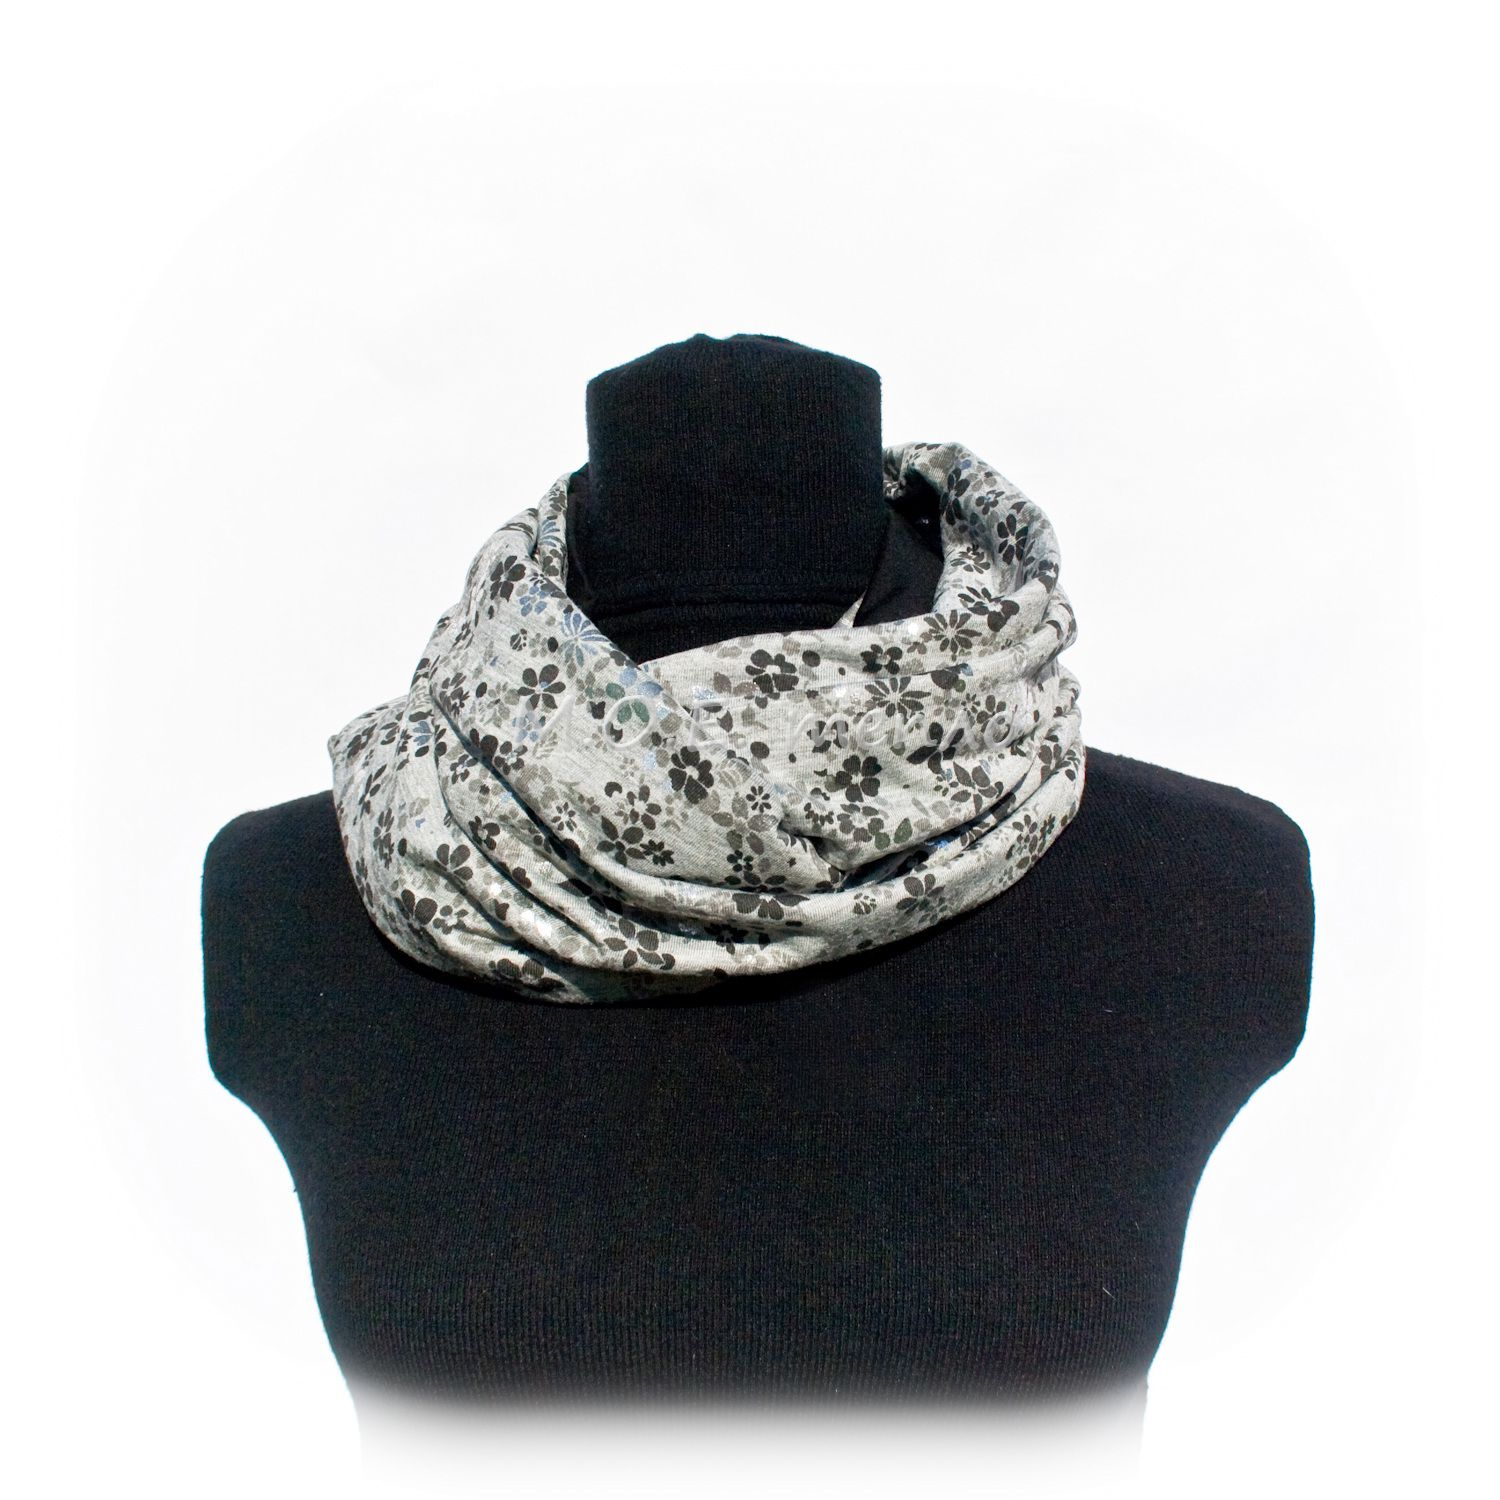 silver accessories clothes scarf neckwarmer